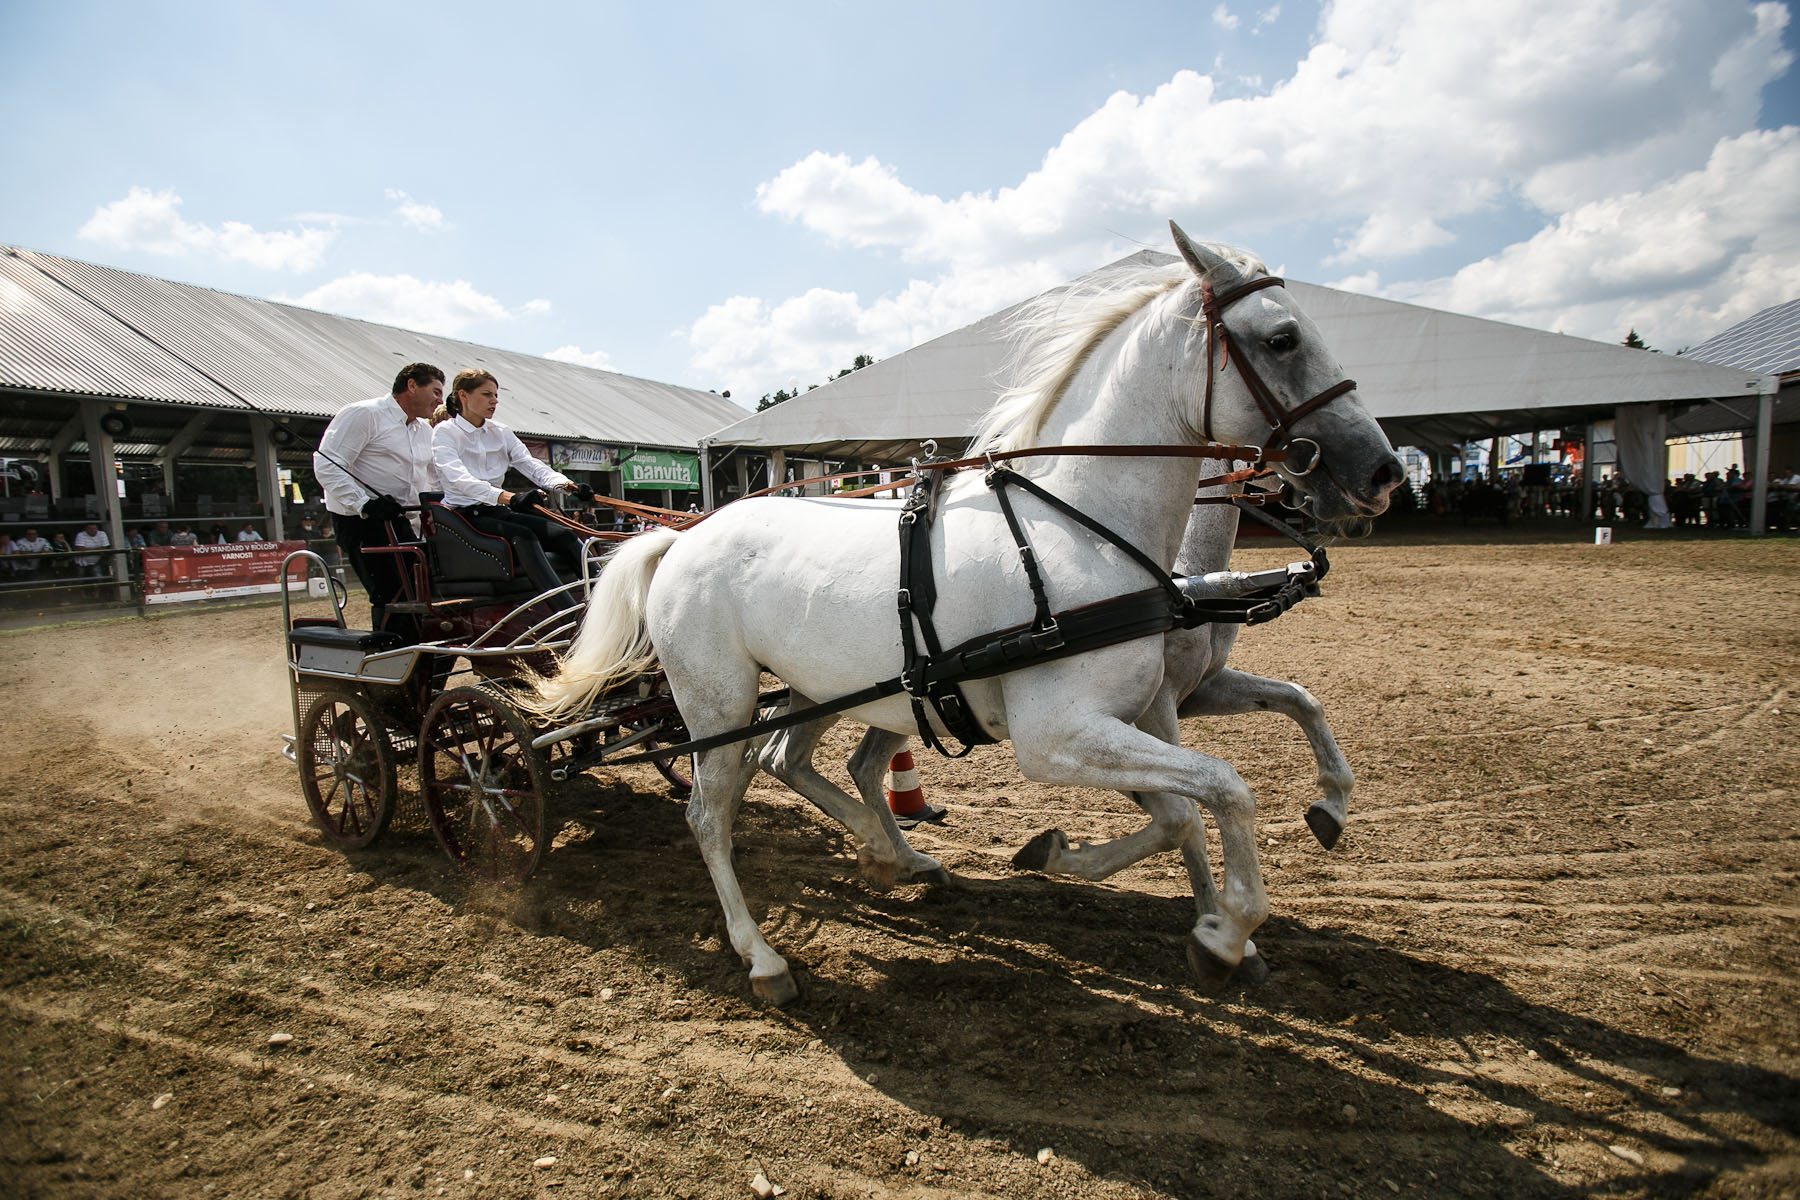 A carriage is pulled by lipizzaner horses during the lipizzaner horse presentation show at the 53rd agricultural fair Agra in Gornja Radgona, Slovenia, Aug. 22, 2015.